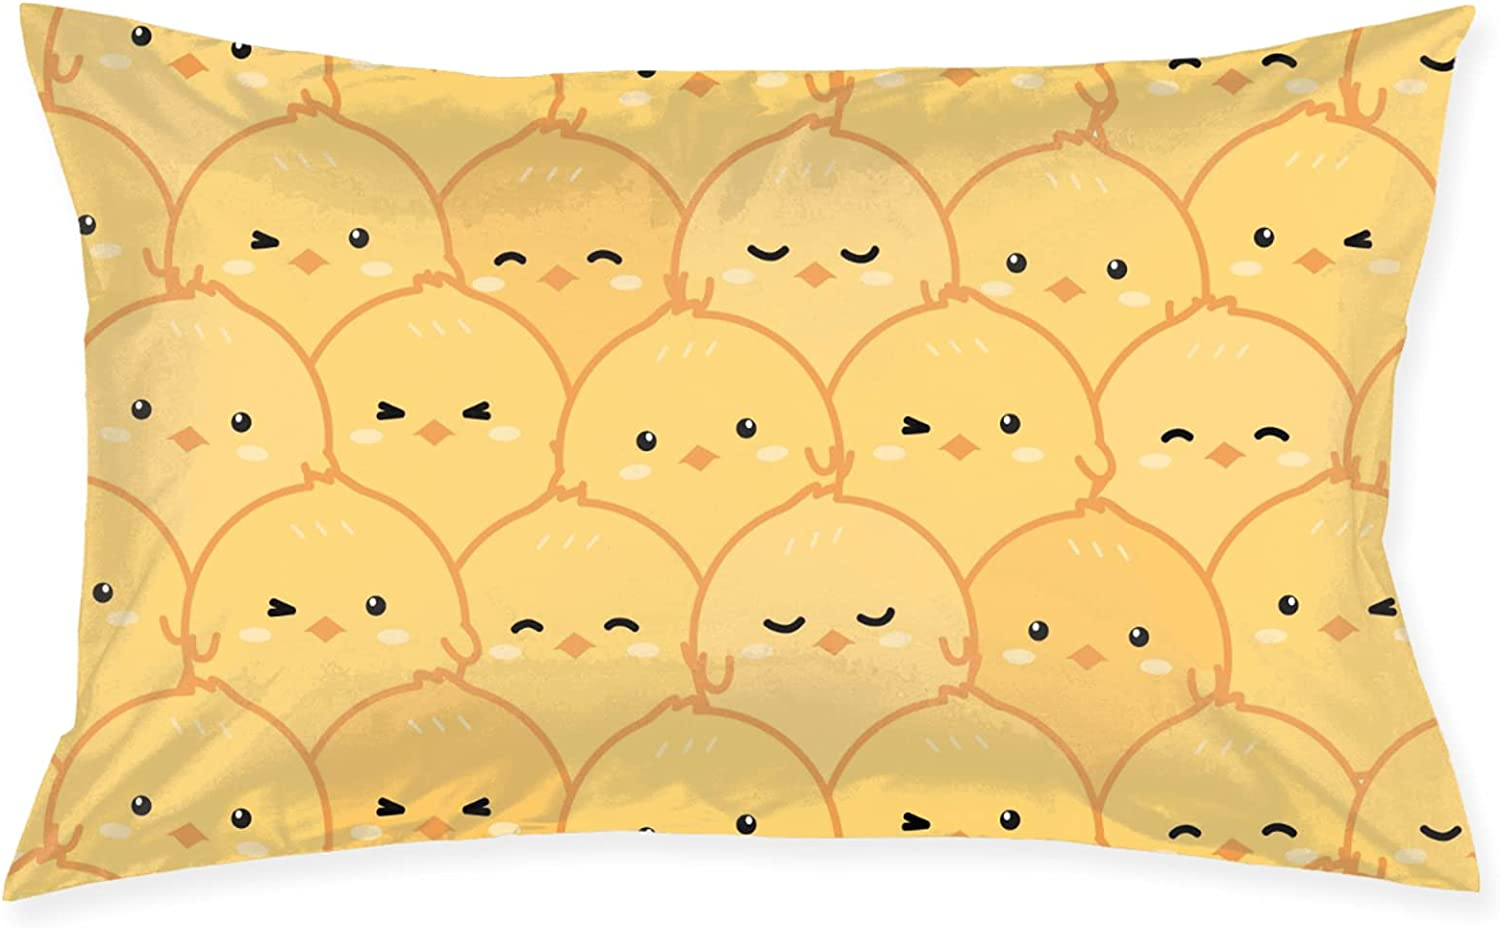 Little Yellow Chicken Pillows Pi Sleeping Pillowcase Max 56% OFF Bed Ranking TOP17